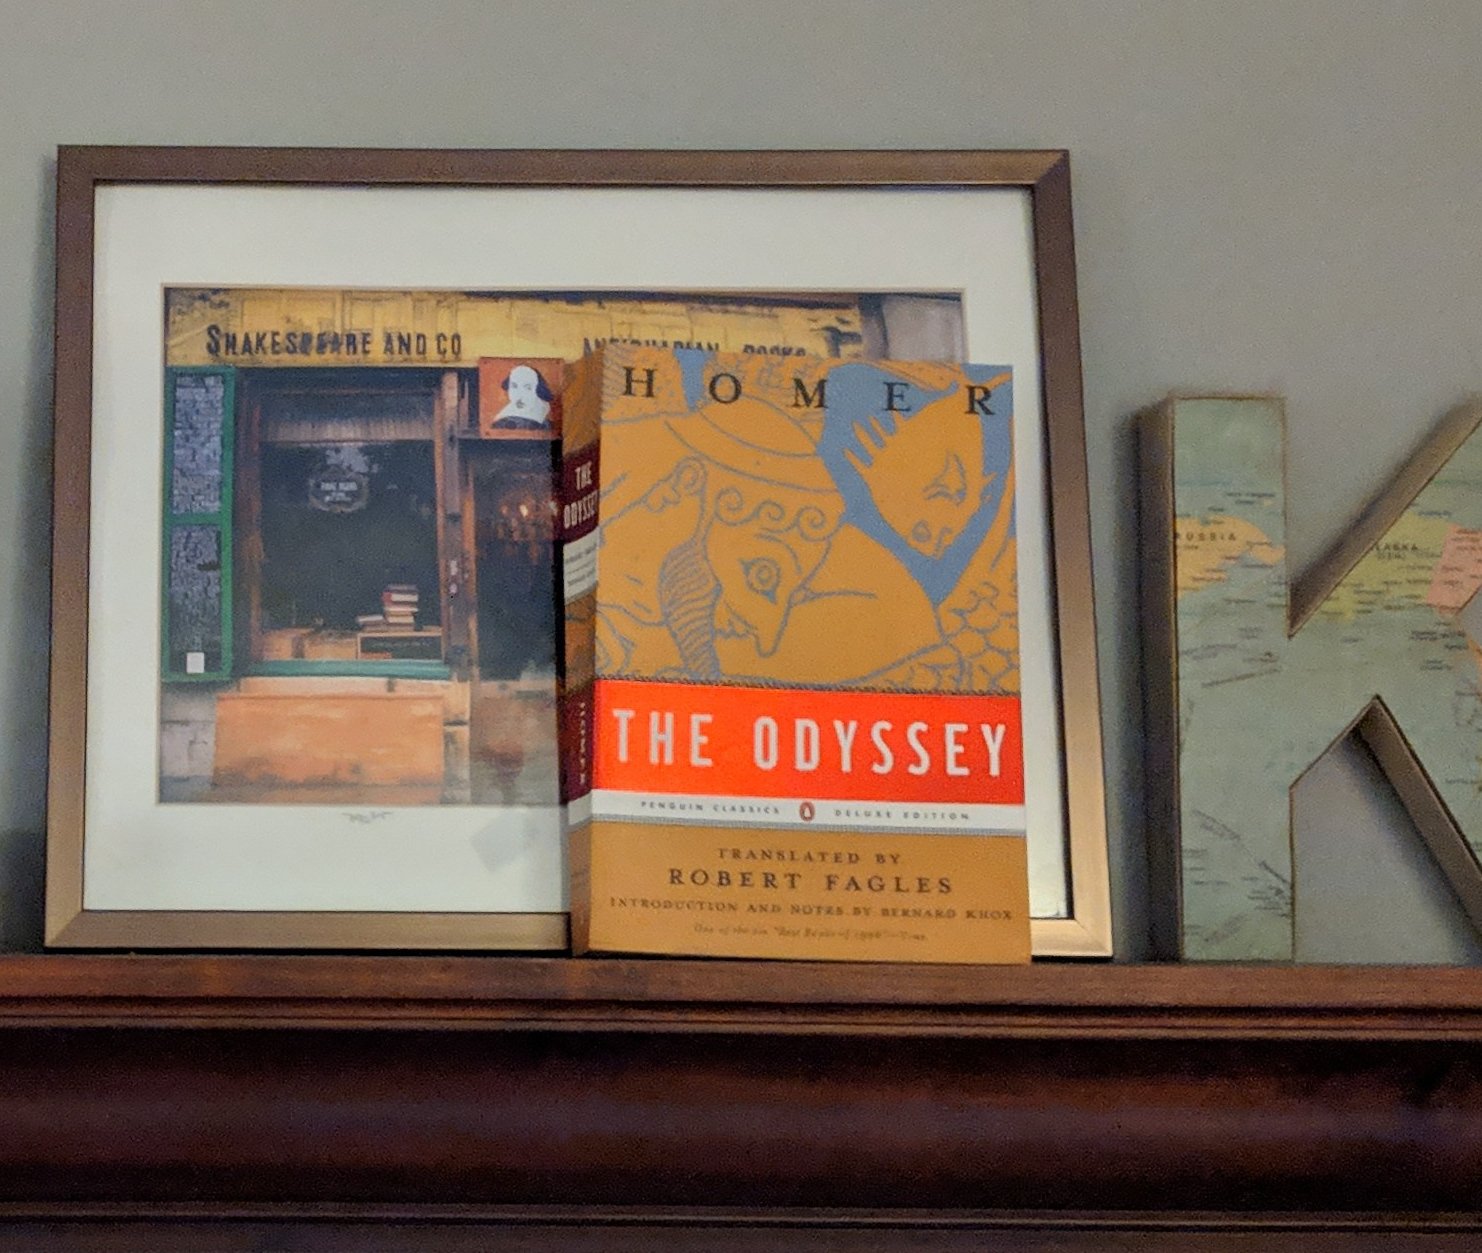 Odyssey fagles on a bookshelf